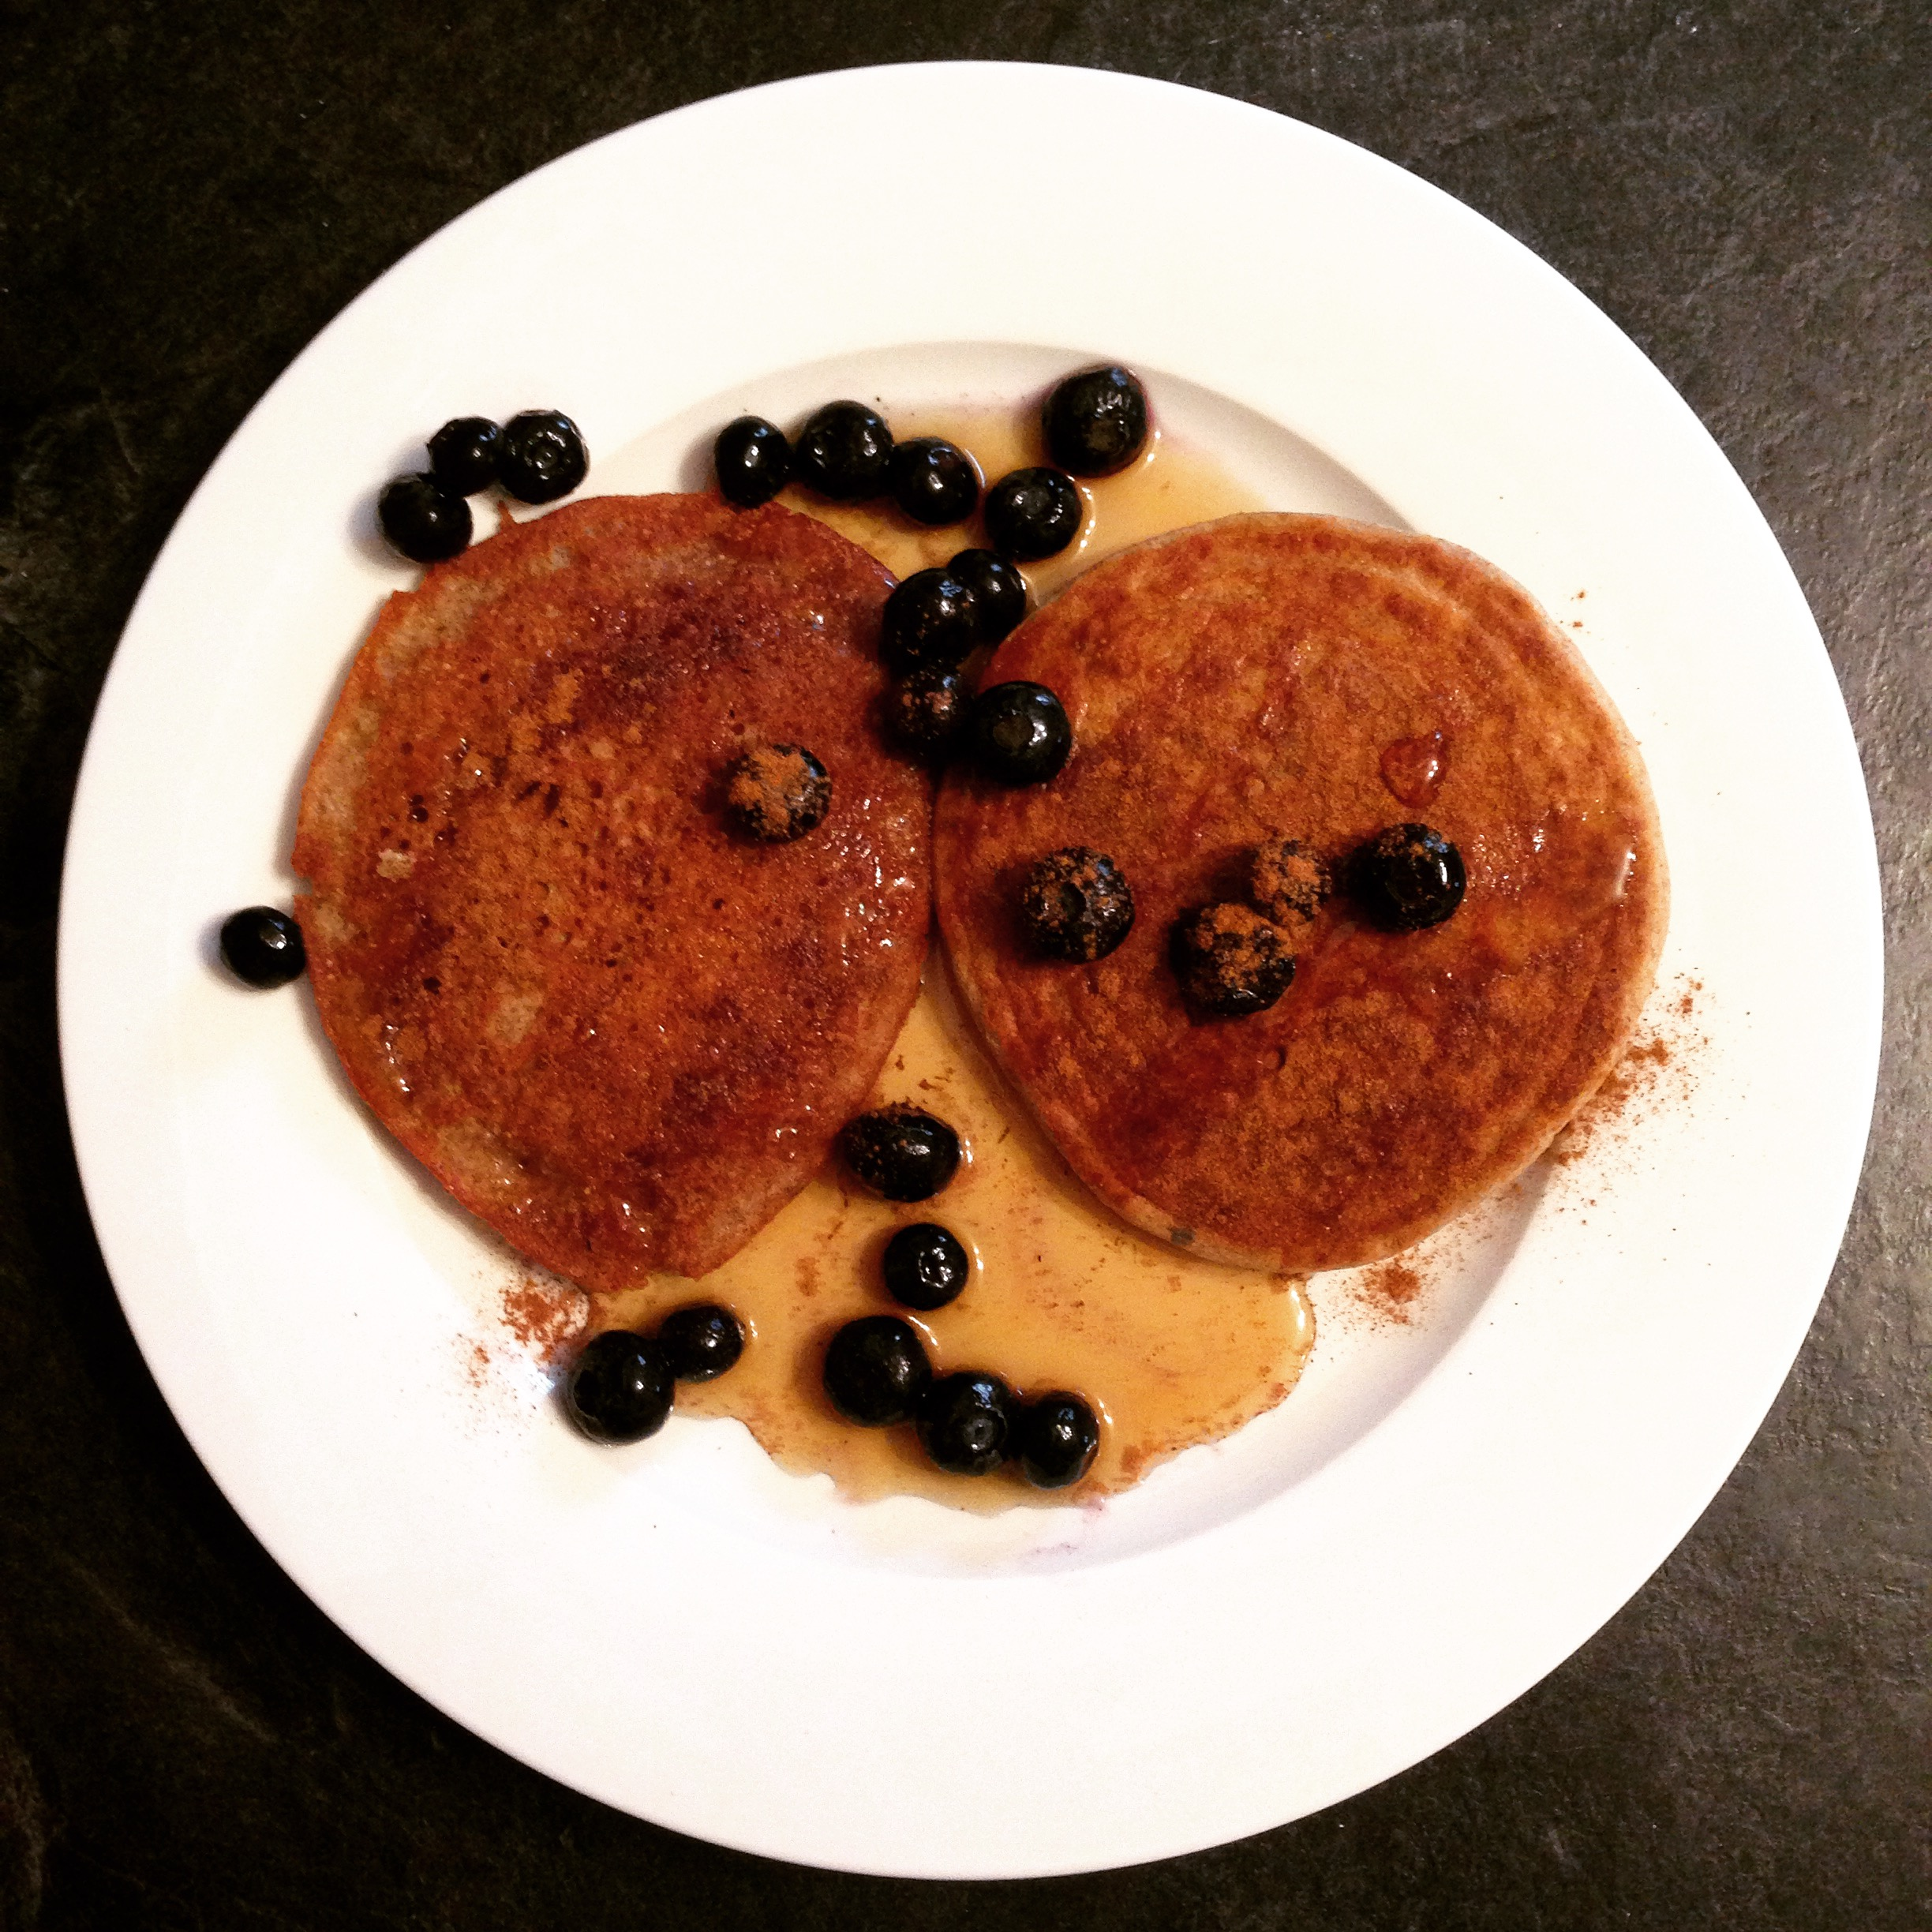 BUCKWheat pancakes with cinnamon, blueberries and pure maple syrup.